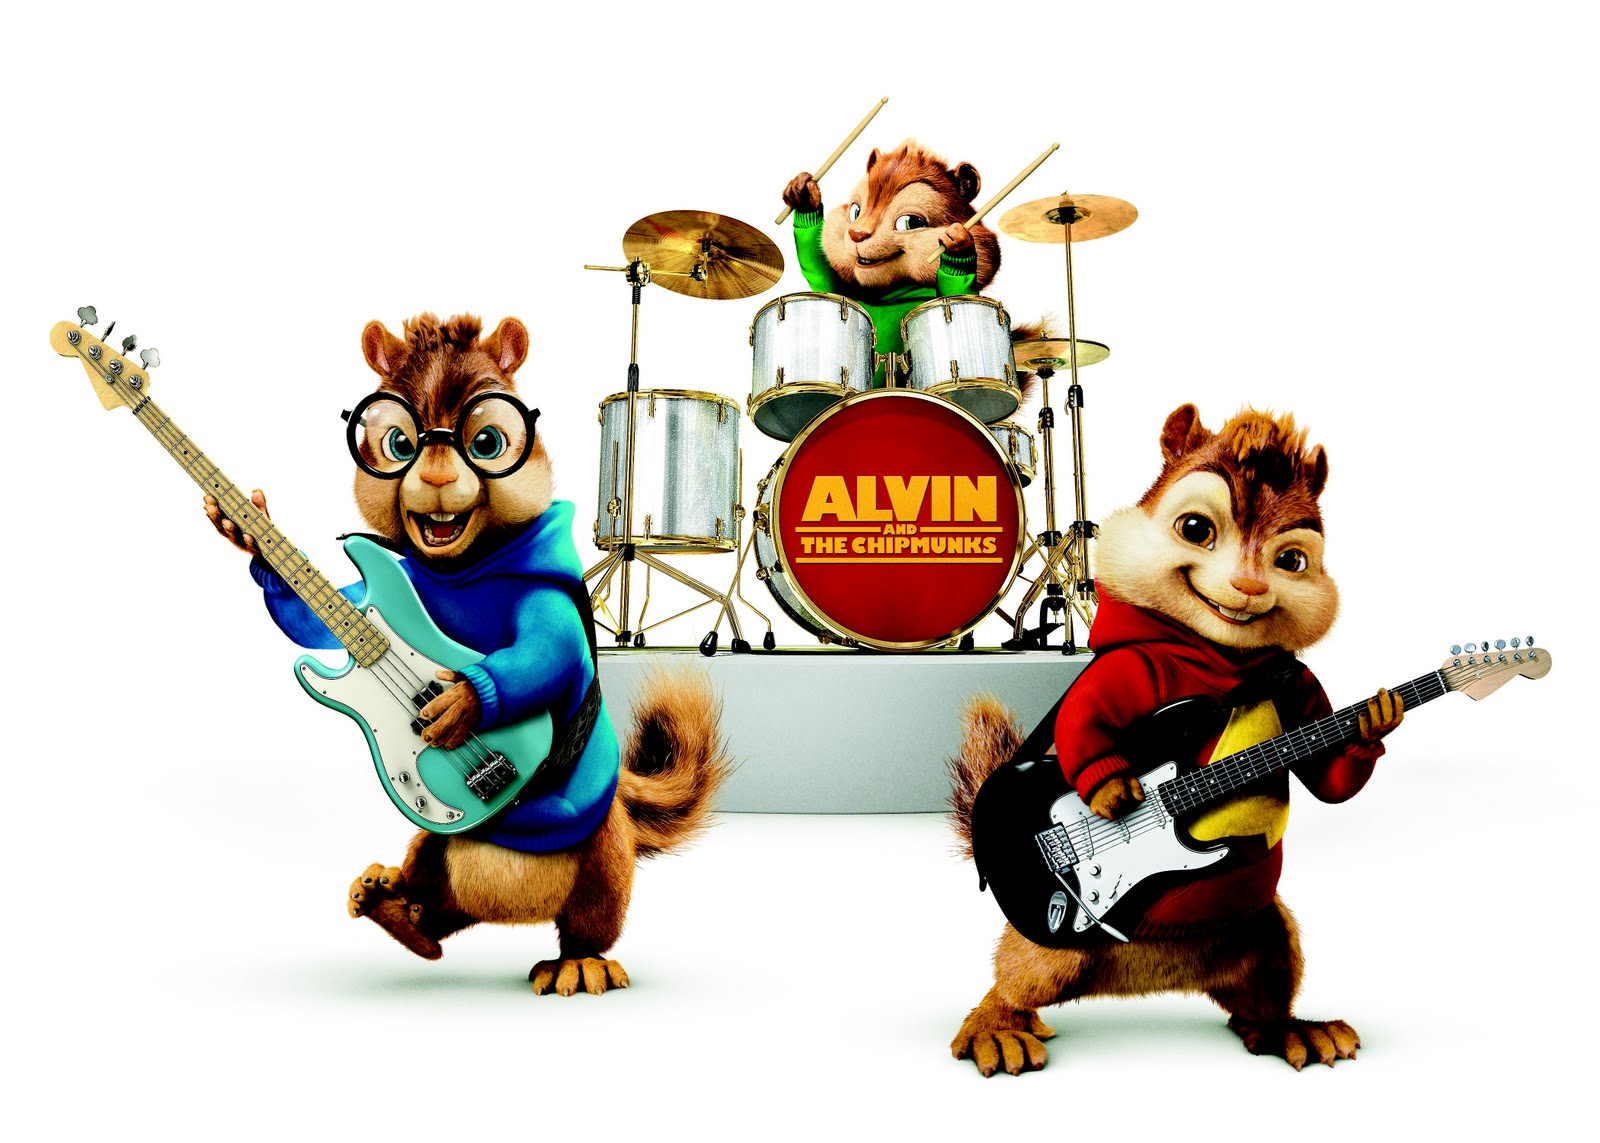 alvin and the chipmunks-#22